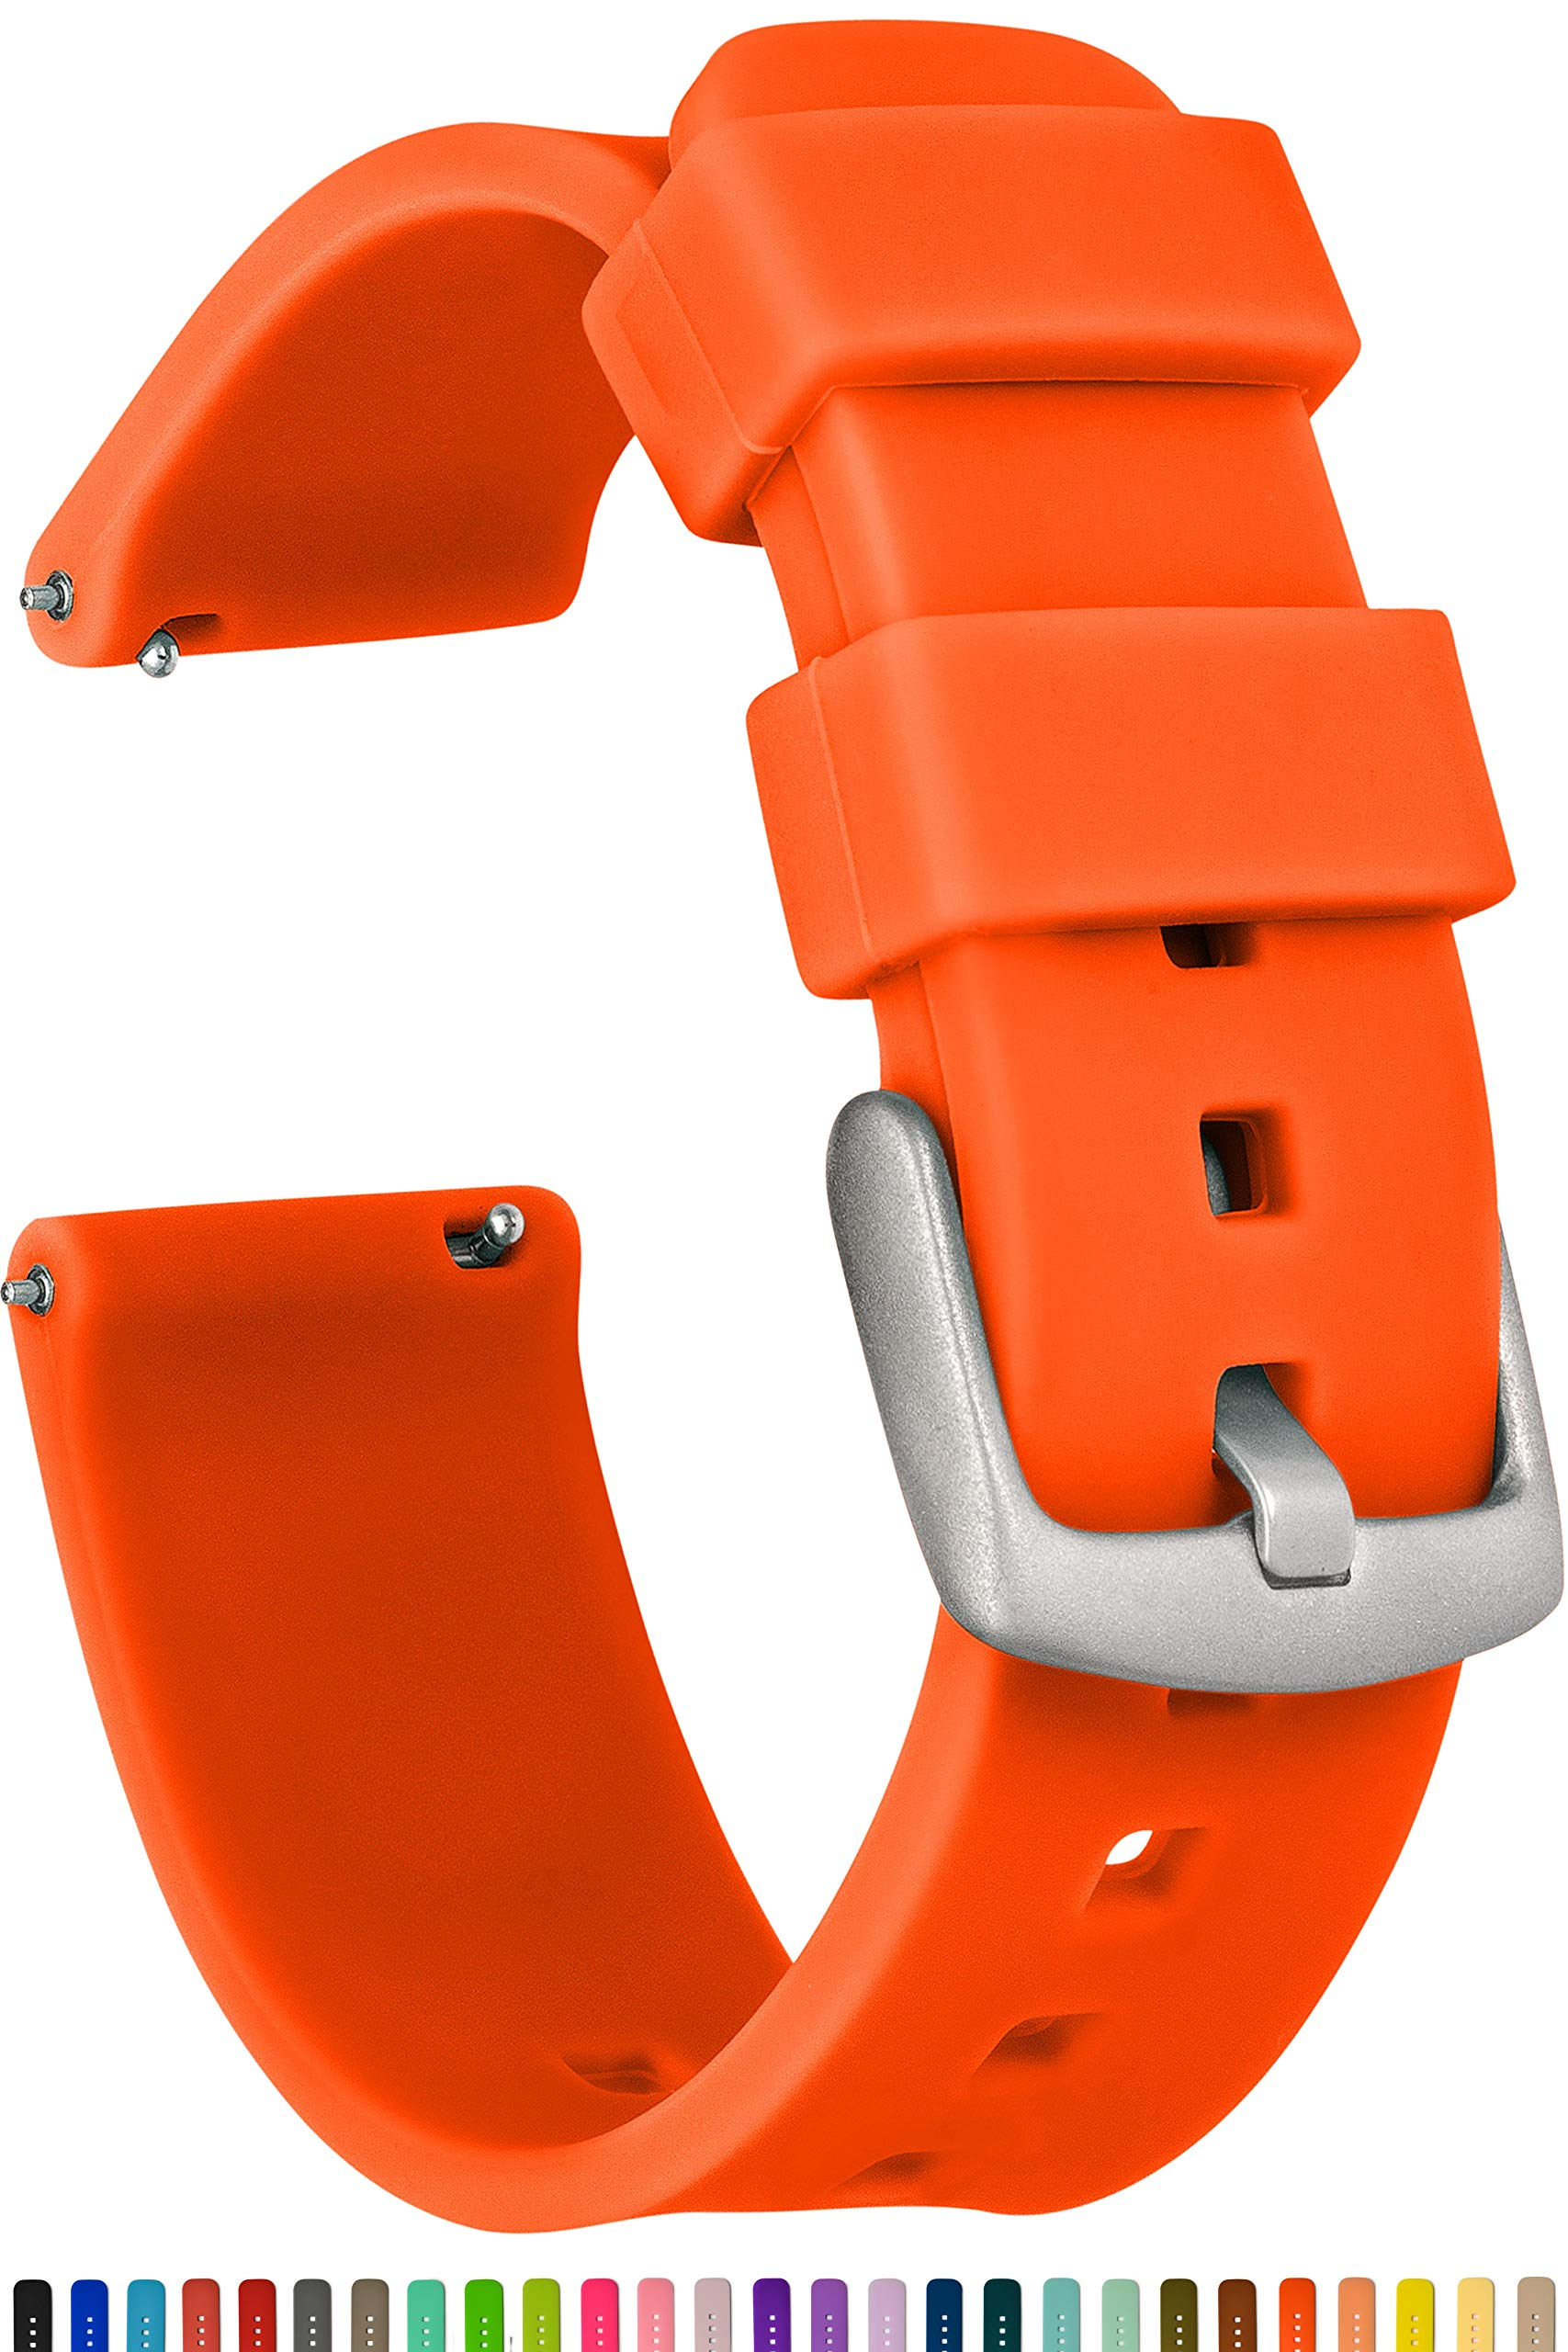 GadgetWraps 18mm Silicone Watch Band Strap with Quick Release Pins – Compatible with Speidel, Daniel Wellington, Wristology - 18mm Quick Release Watch Band (Pure Orange, 18mm)